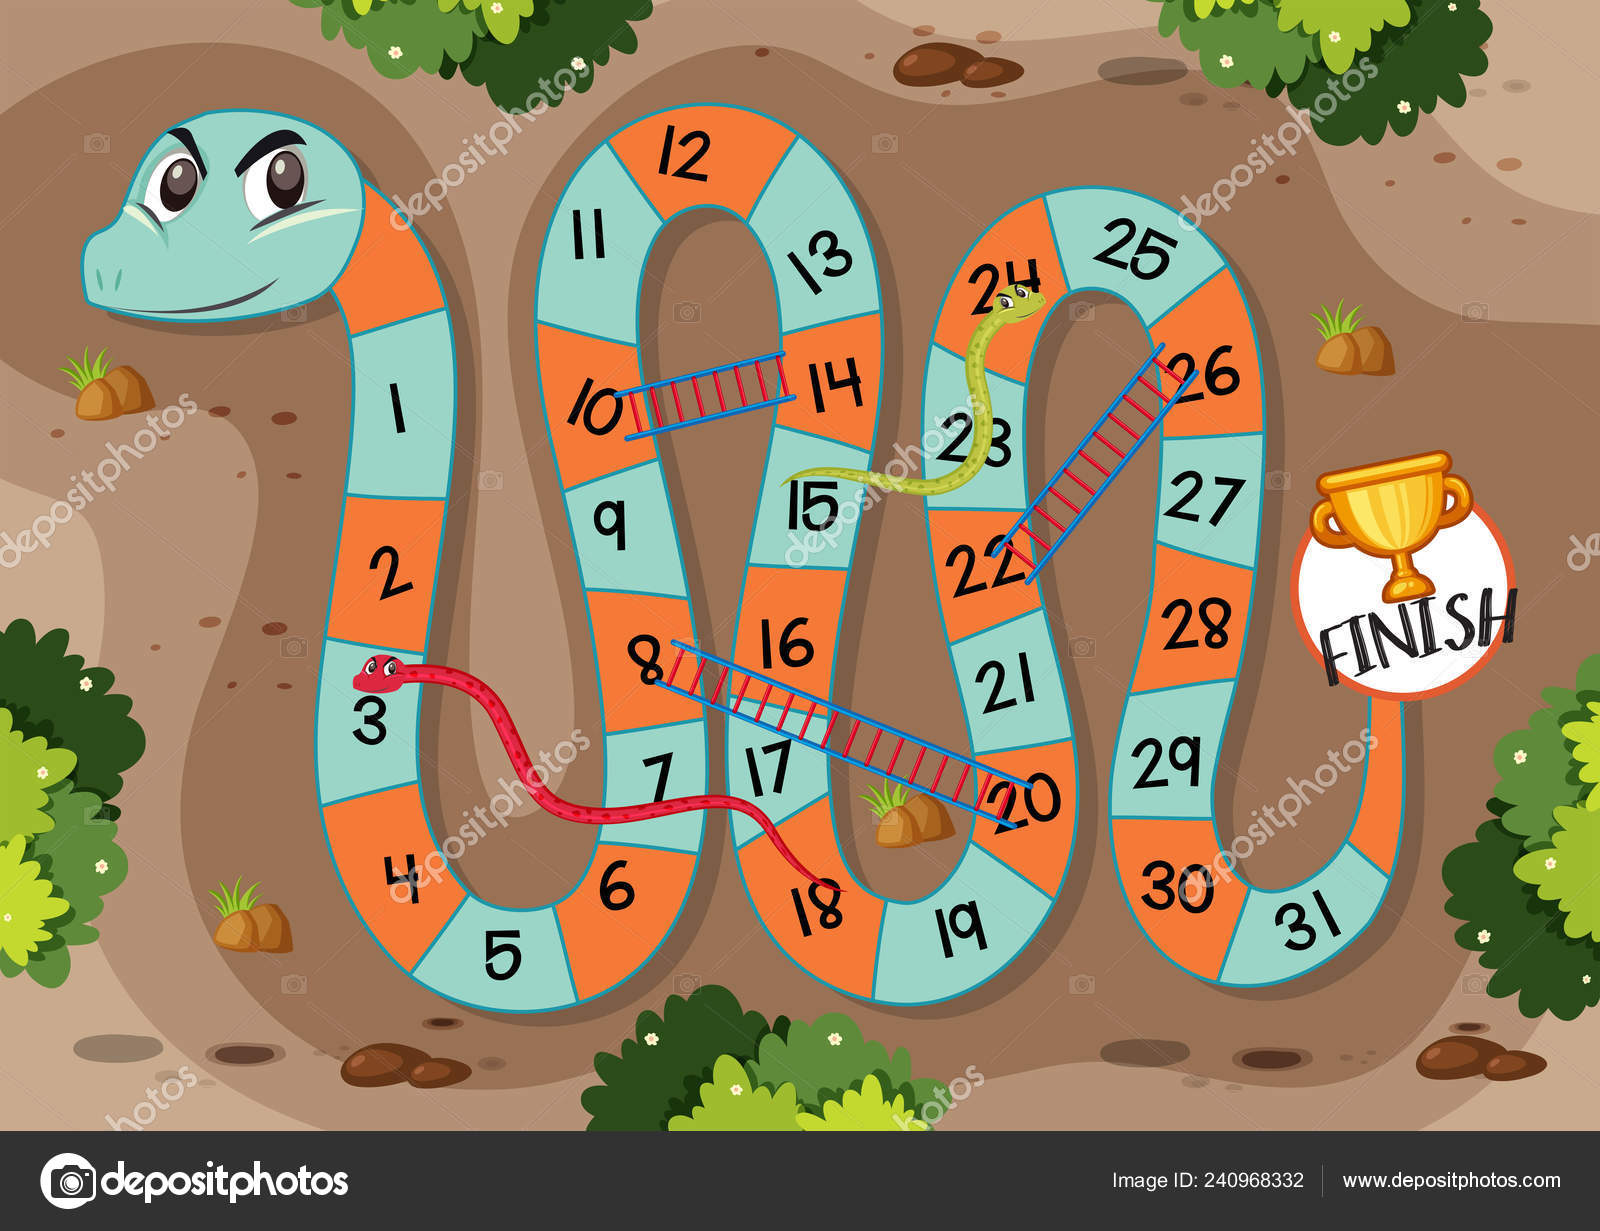 ᐈ Snake Game Stock Backgrounds Royalty Free Snake And Ladder Pictures Download On Depositphotos